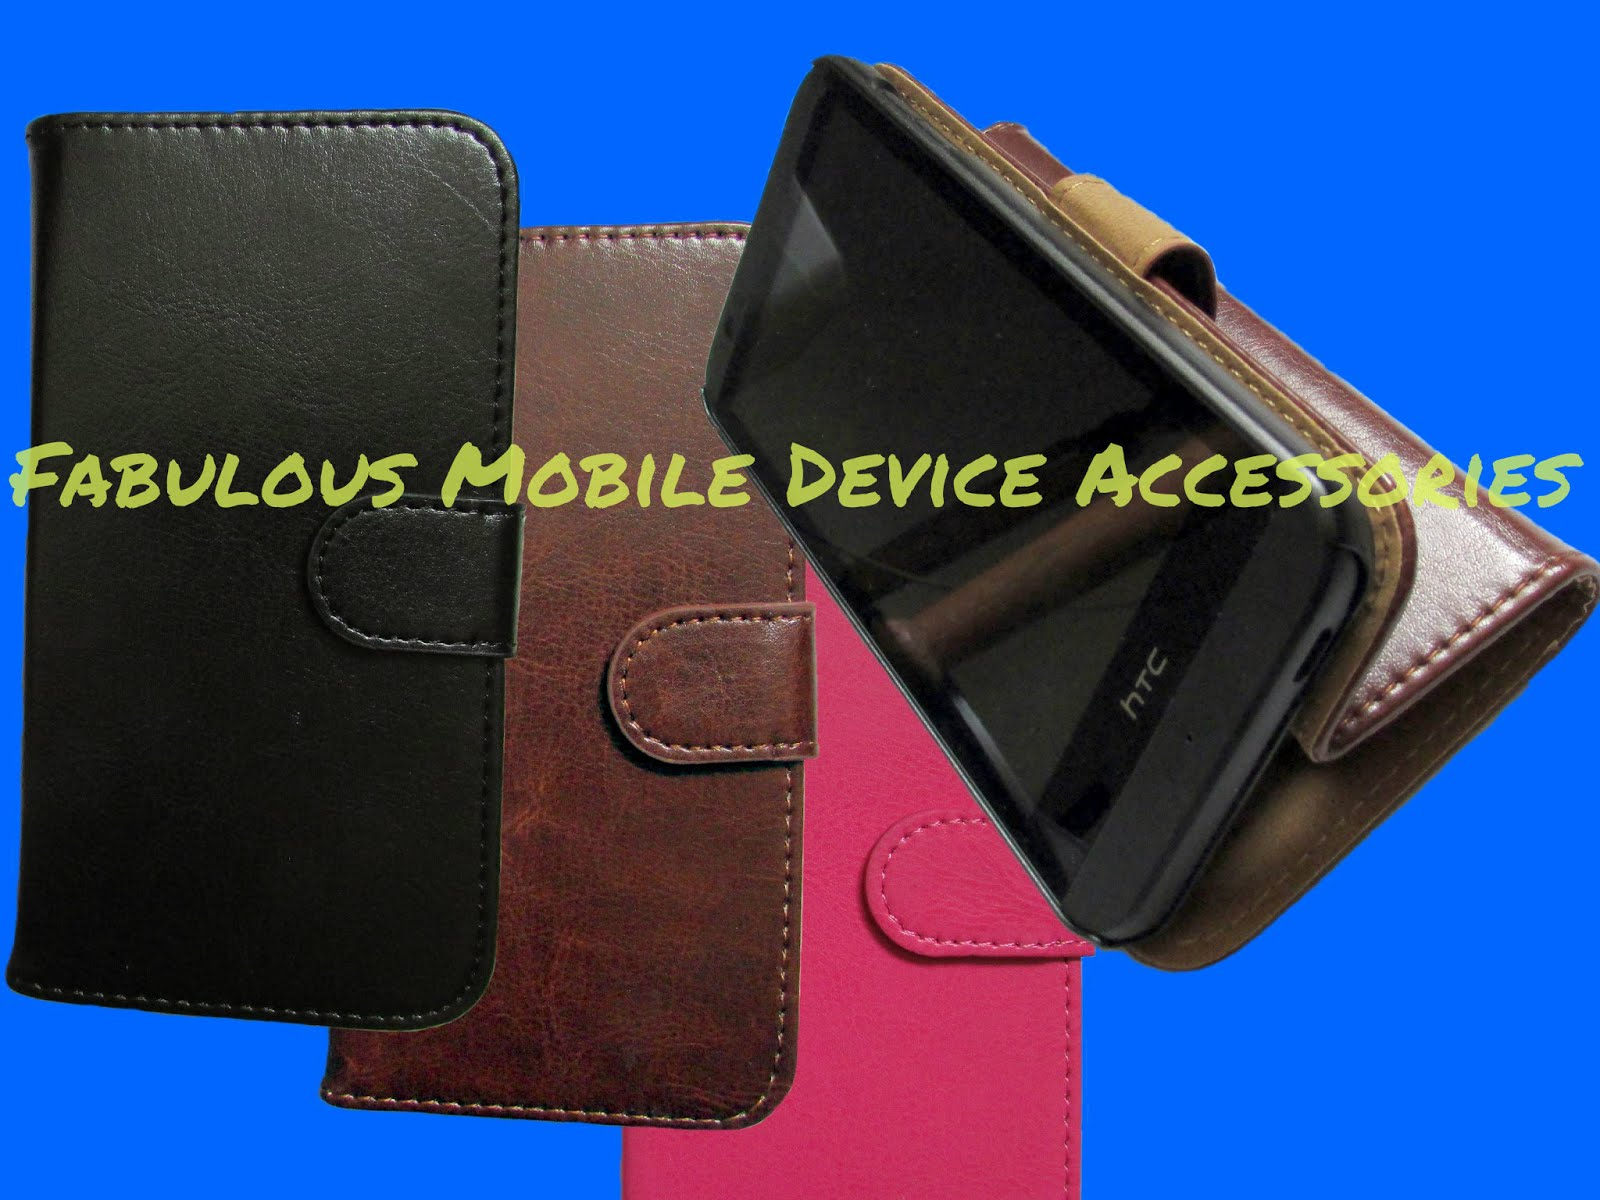 Fabulous Mobile Device Accessories